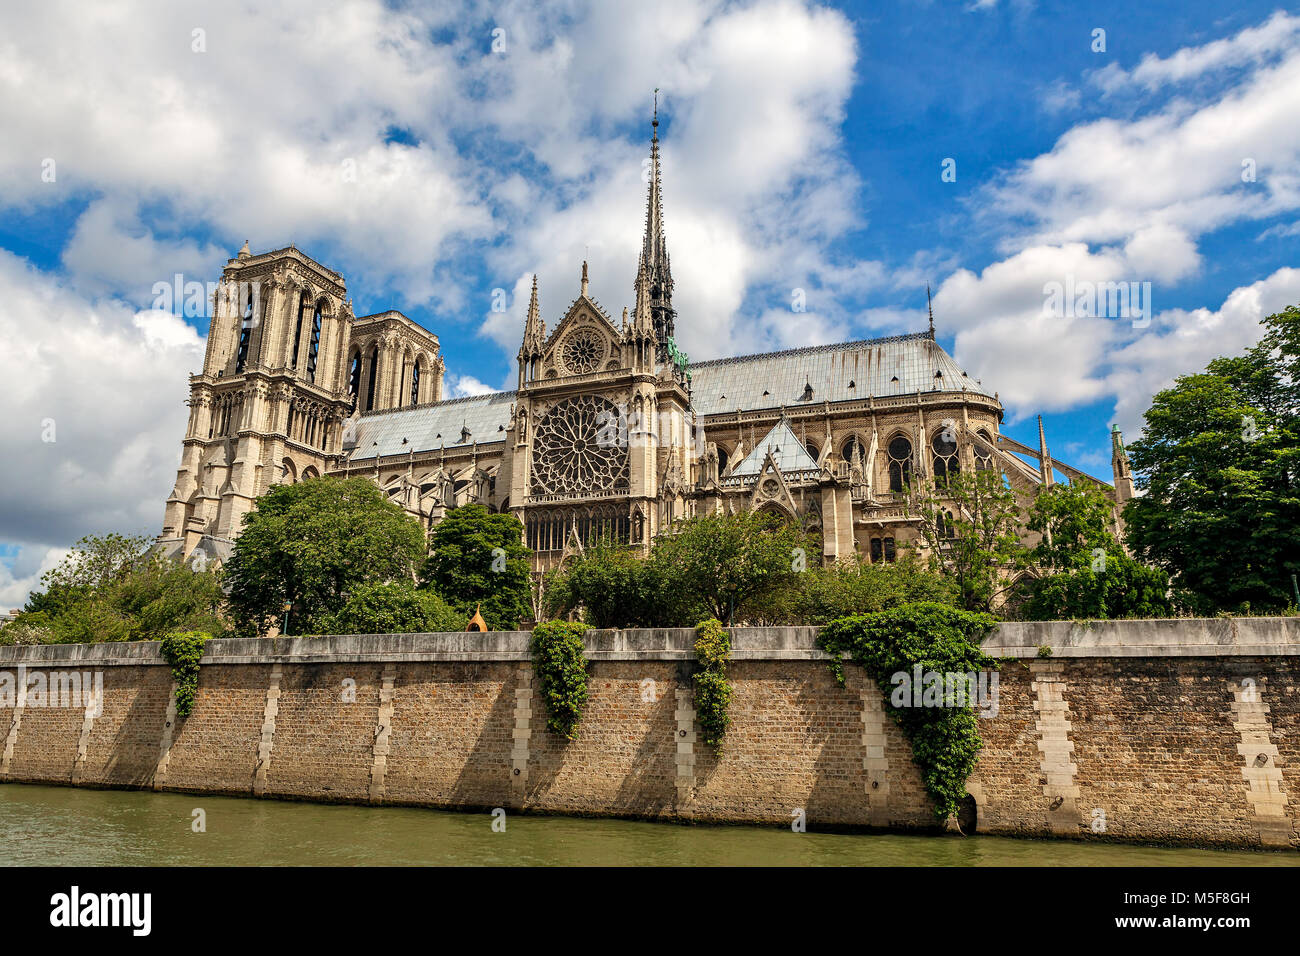 View of famous Notre-Dame de Paris Cathedral under beautiful sky in Paris, France. - Stock Image